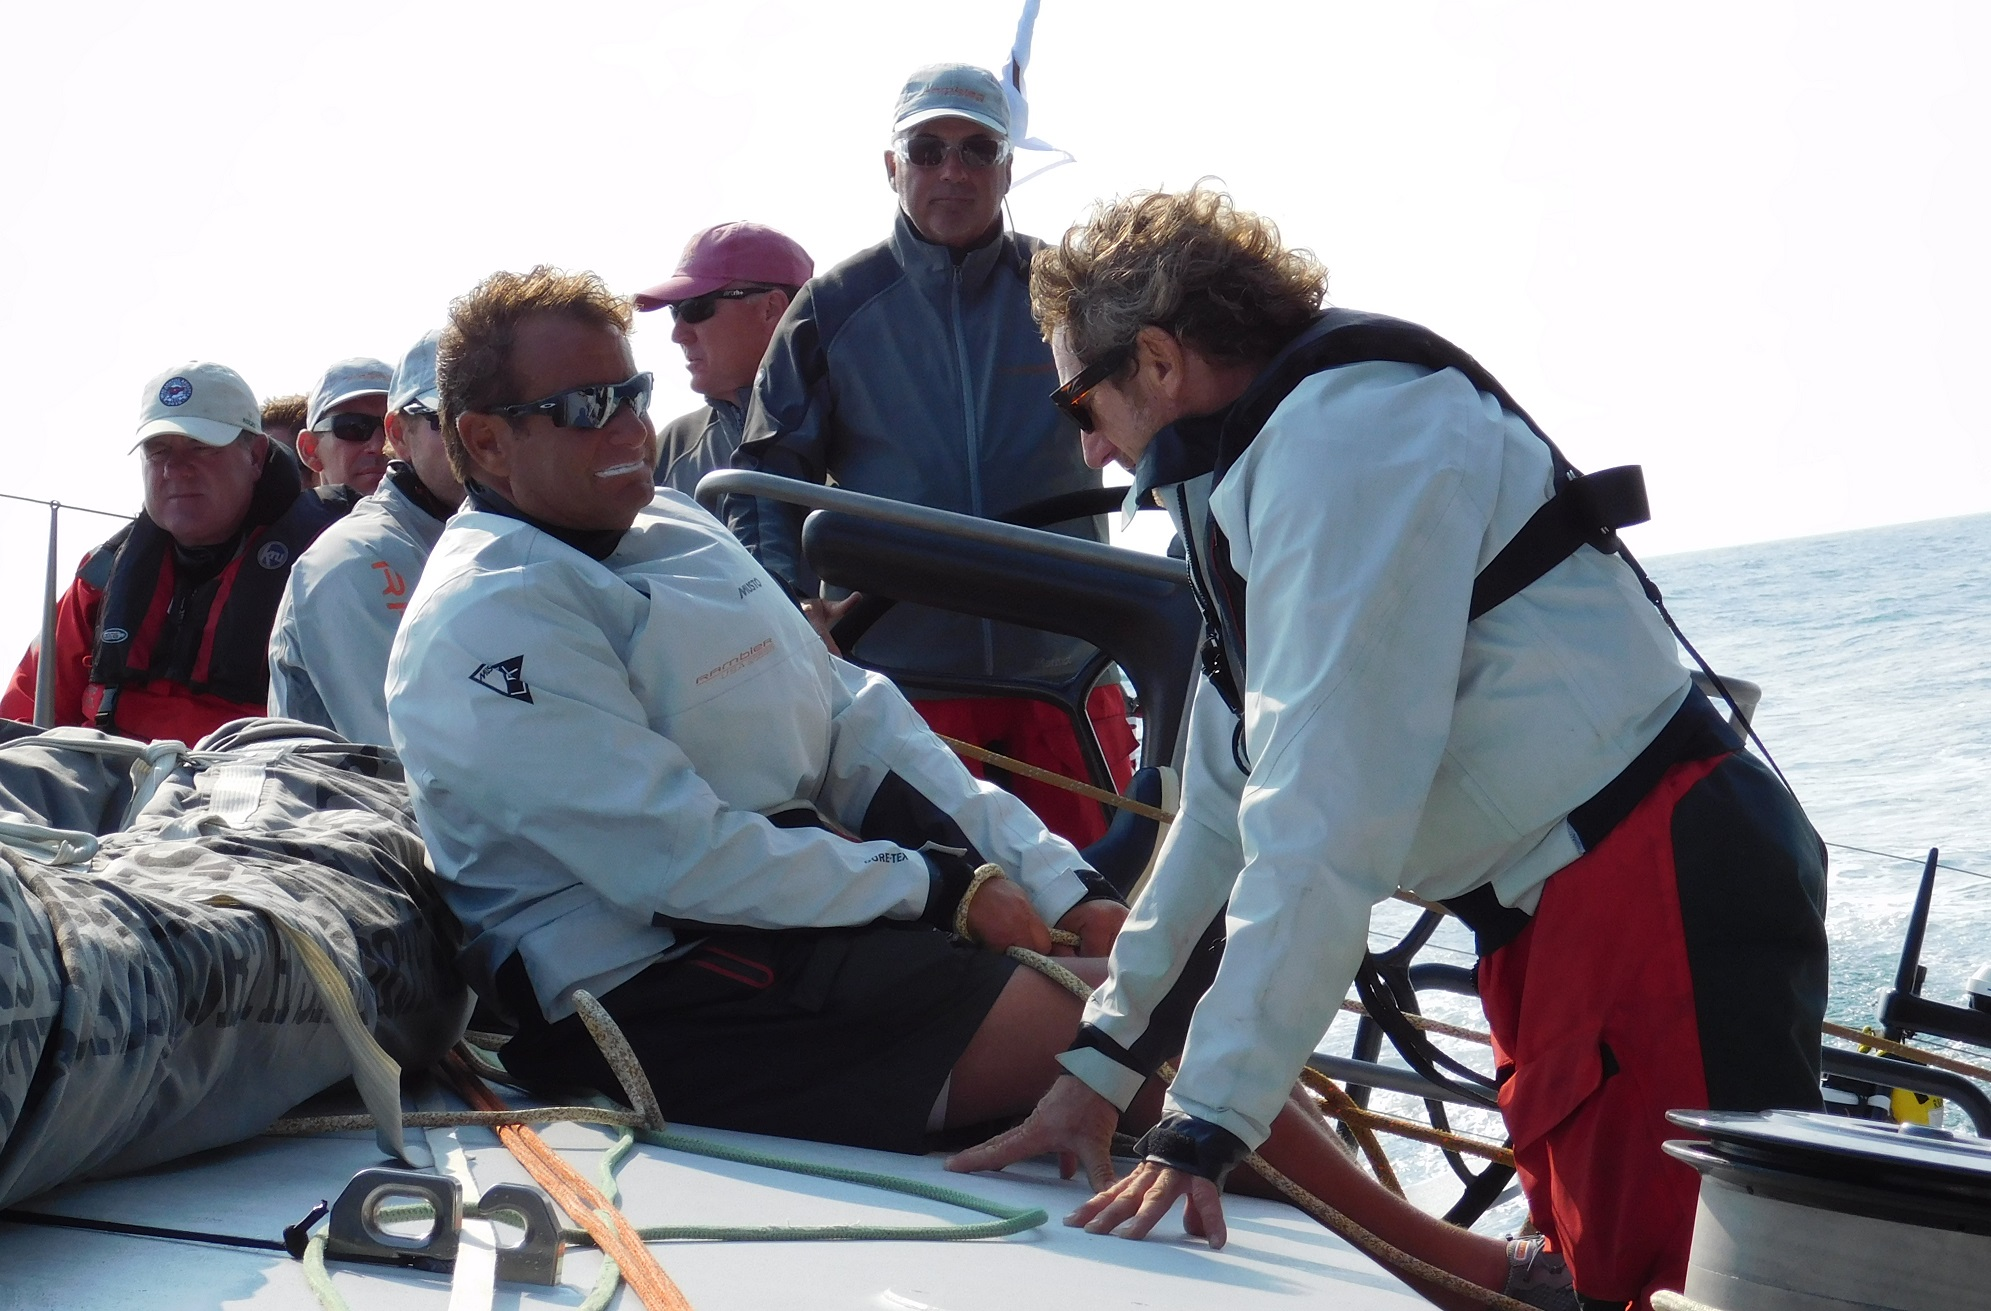 Onboard George David's  Rambler88  during the Transatlantic Race. Former America's Cup winners and  Alinghi  teammates Josh Belsky (left) and Simon Daubney surely debate the merits of getting to sleep in your own bed each evening versus a swampy pipe cot inside a carbon fiber drum.